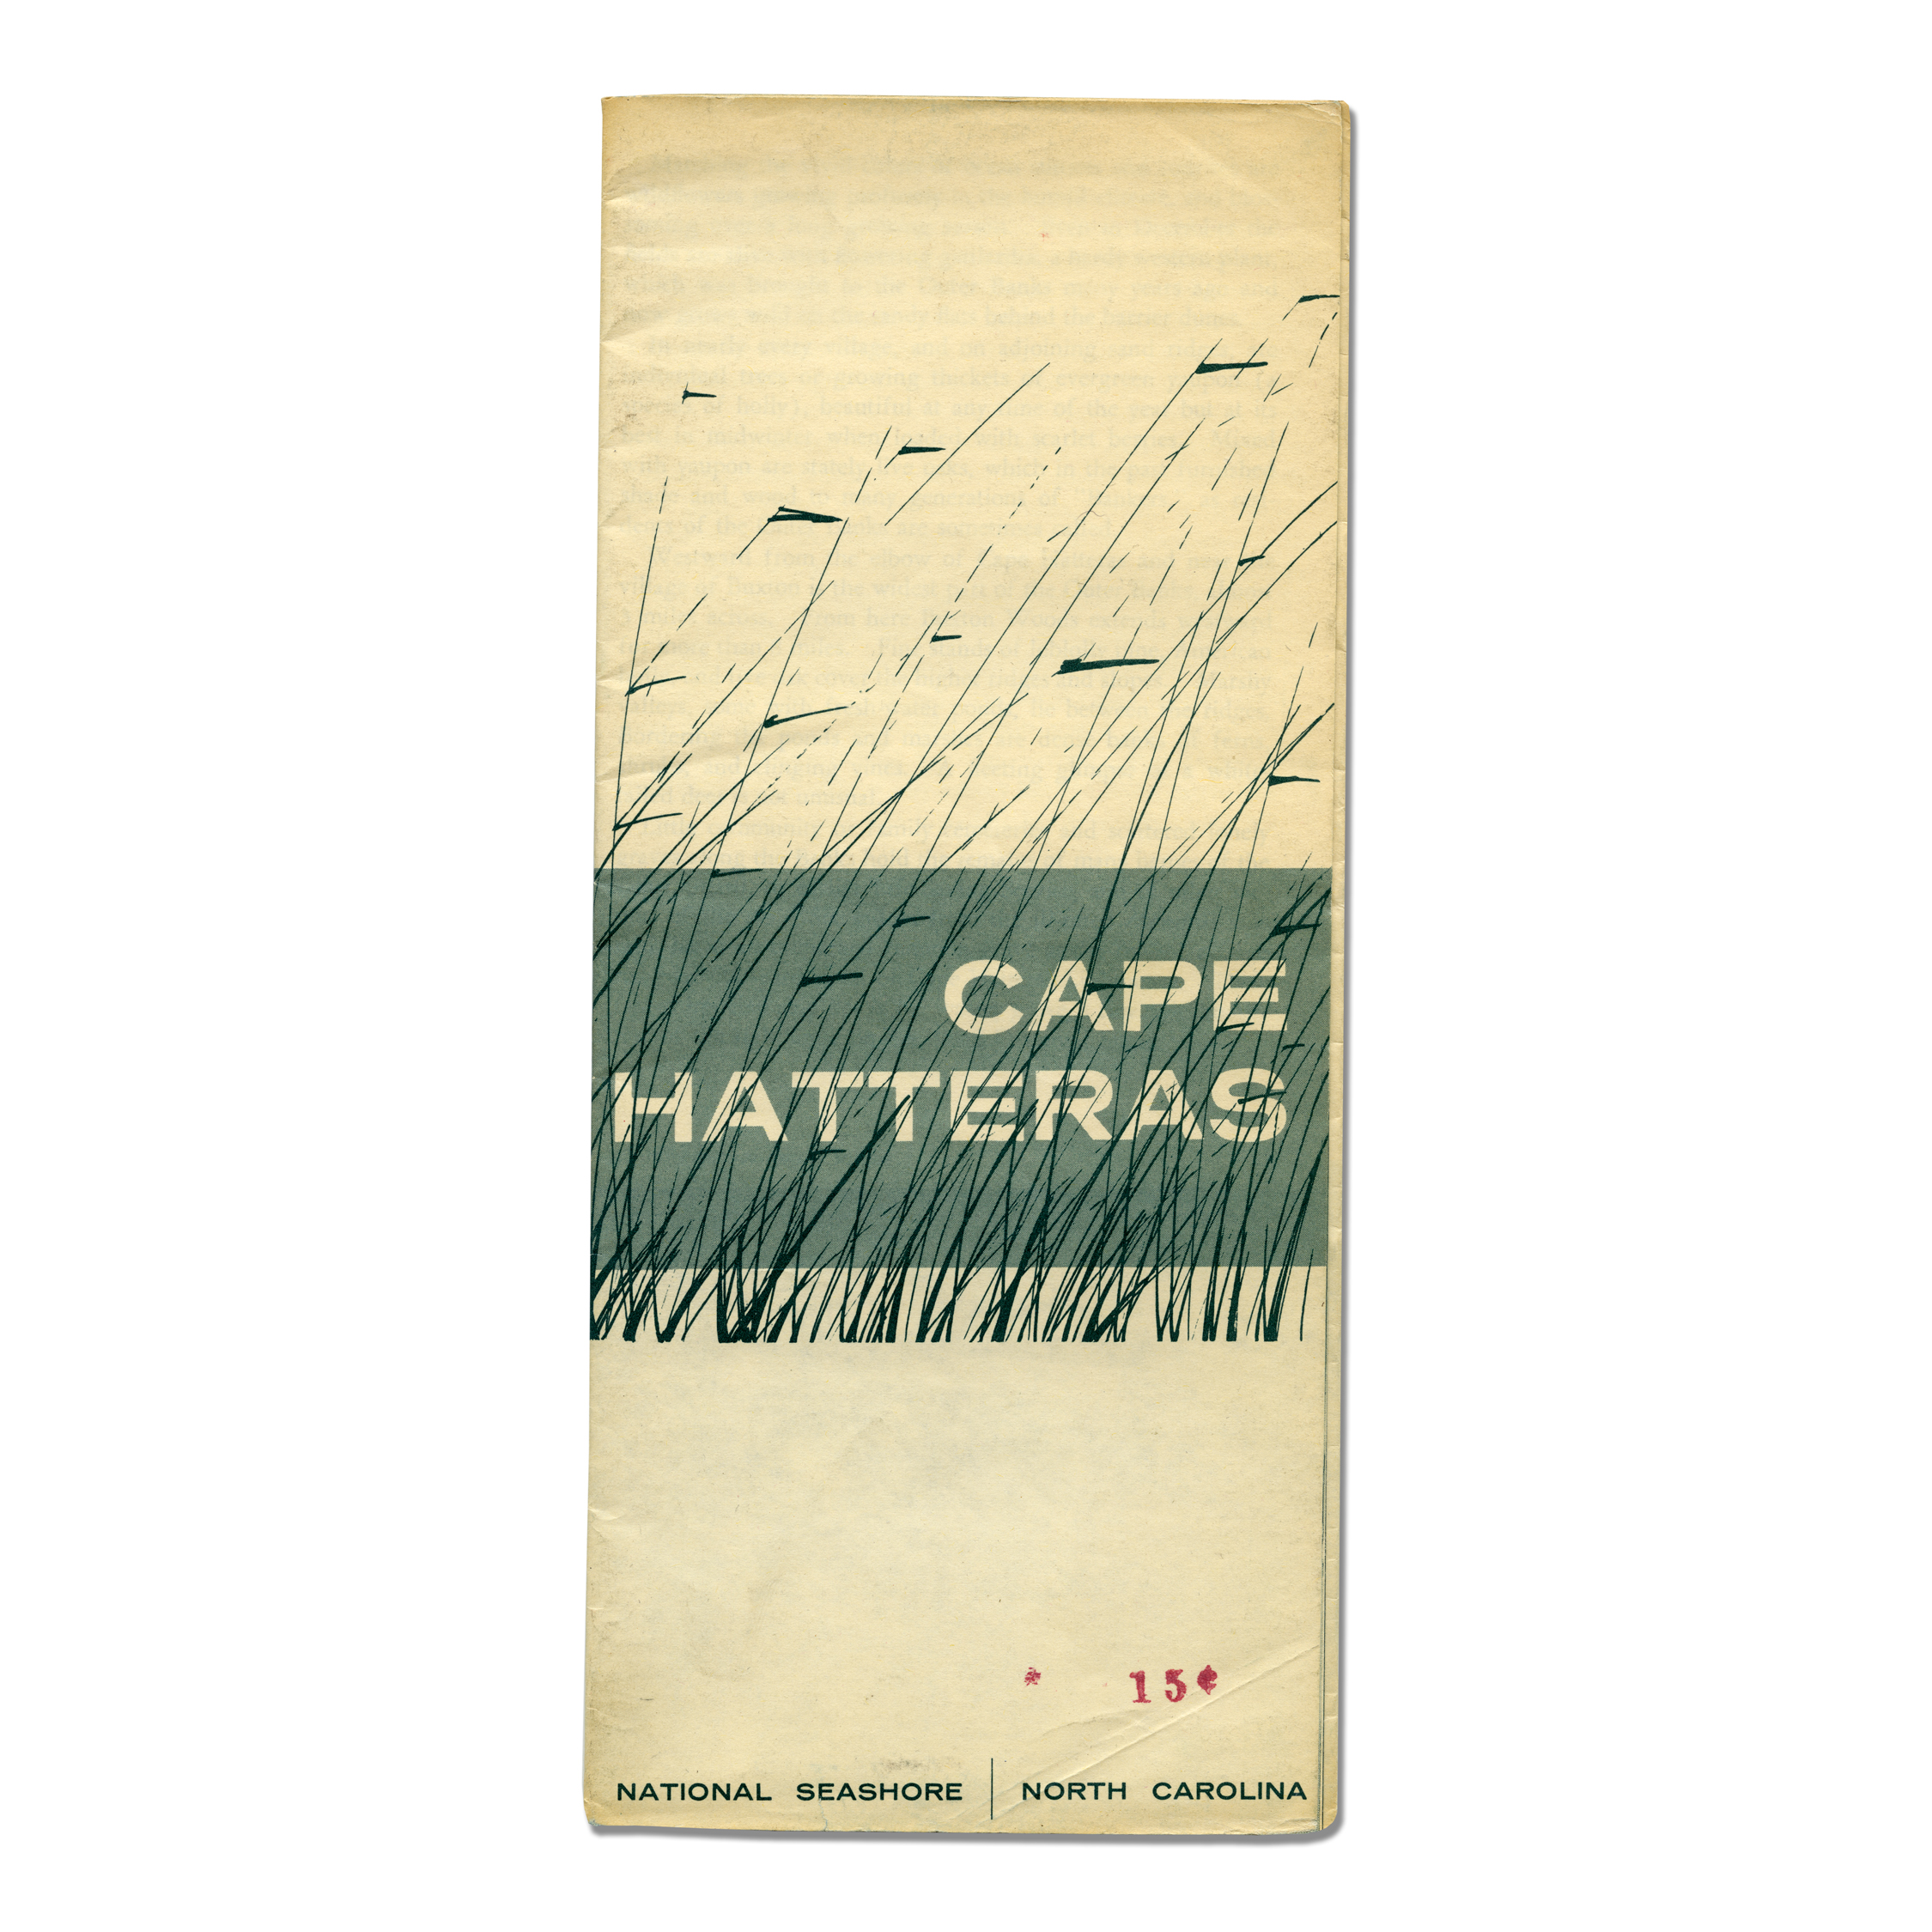 1964_cape_hatteras_national_seashore_brochure.jpg